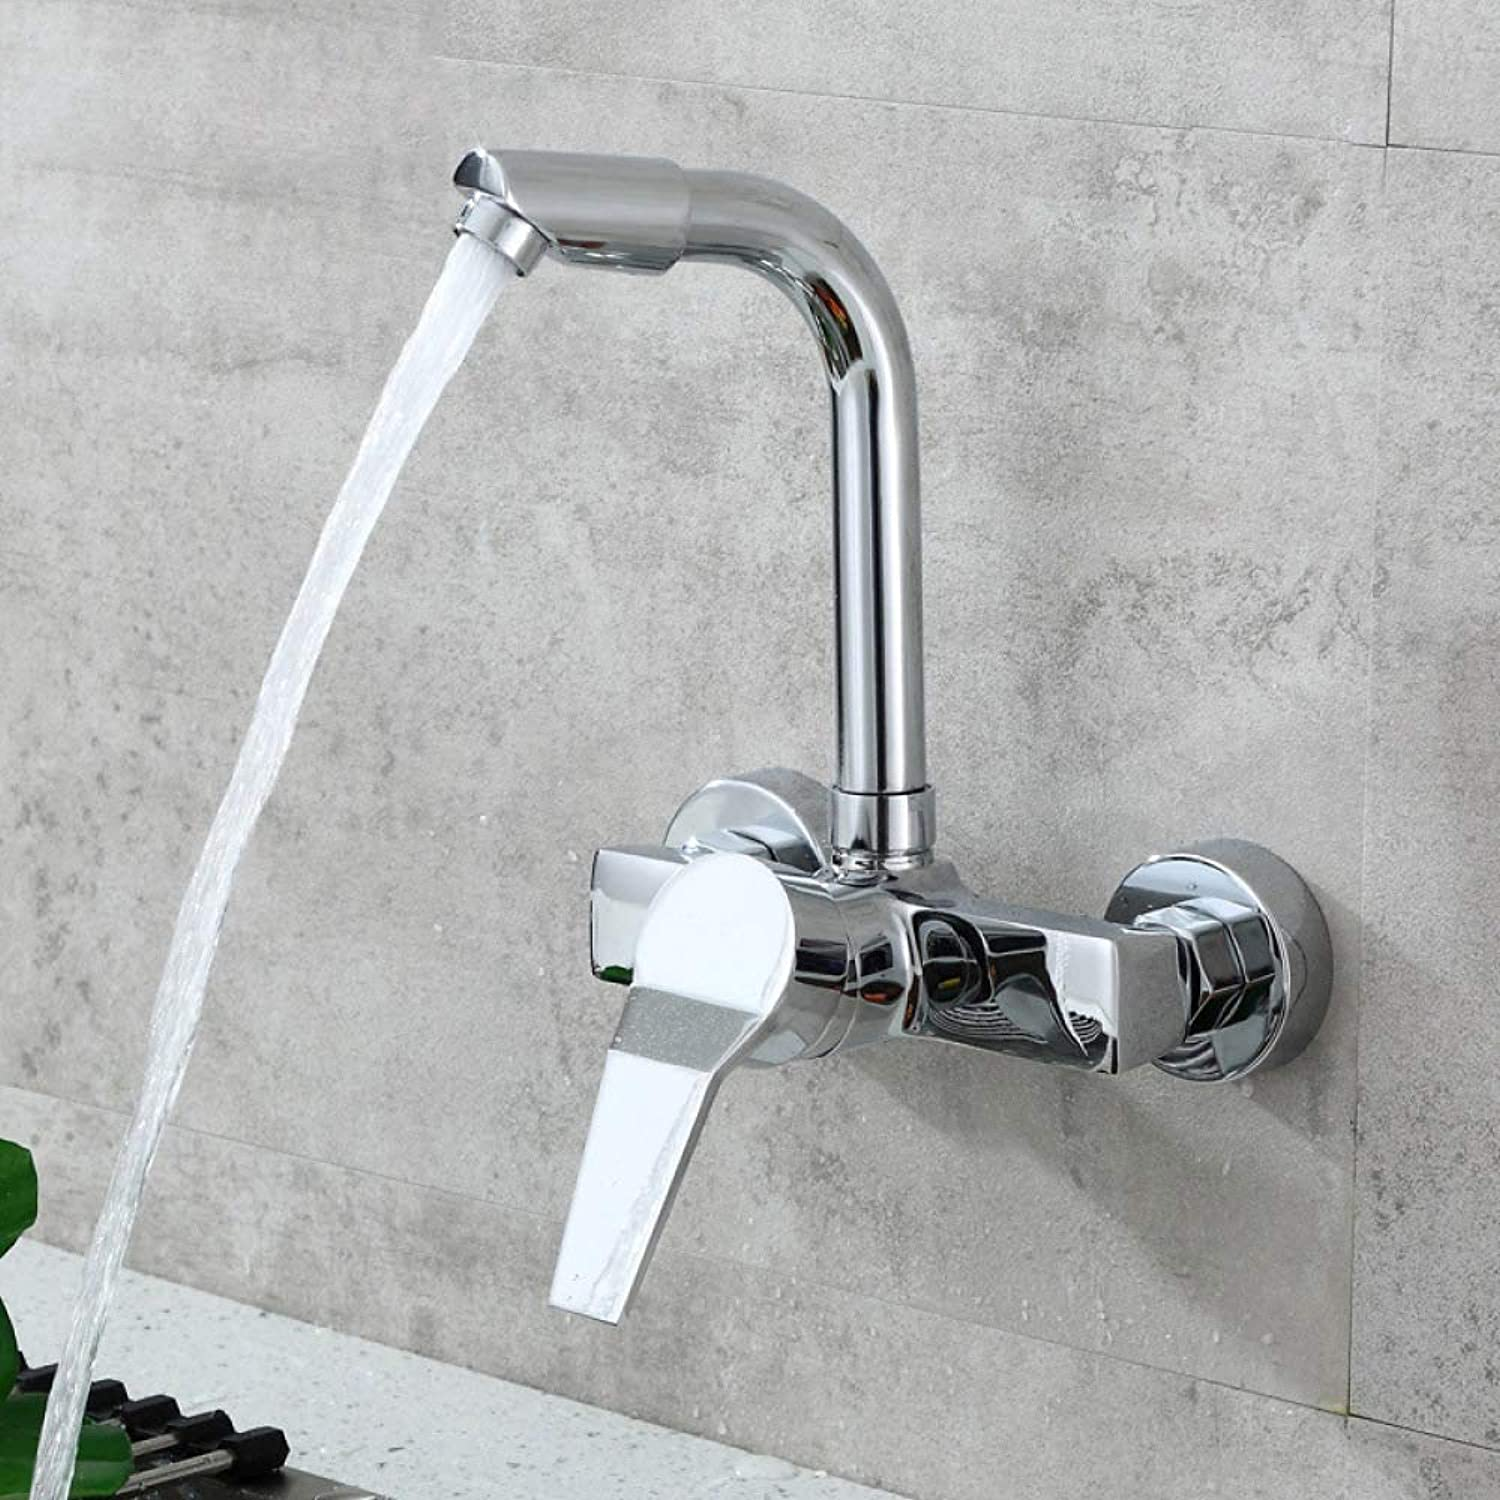 PZXY Faucet All Copper Kitchen into The Wall Type hot and Cold Faucet wash Vegetable Basin Sink Balcony Laundry Pool Faucet